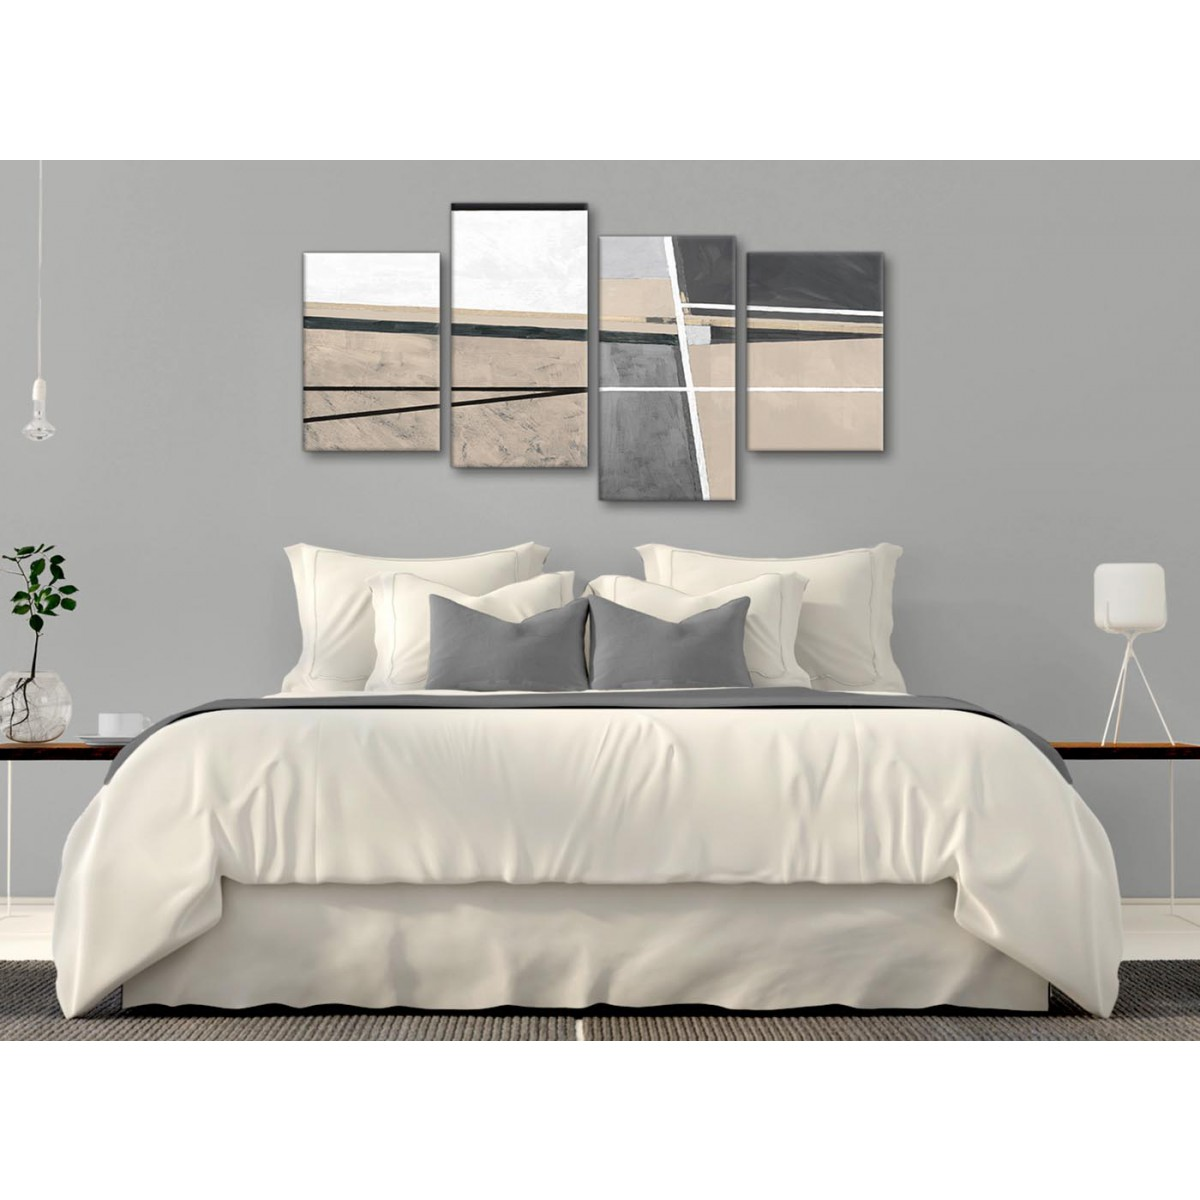 Large Beige Cream Grey Painting Abstract Bedroom Canvas